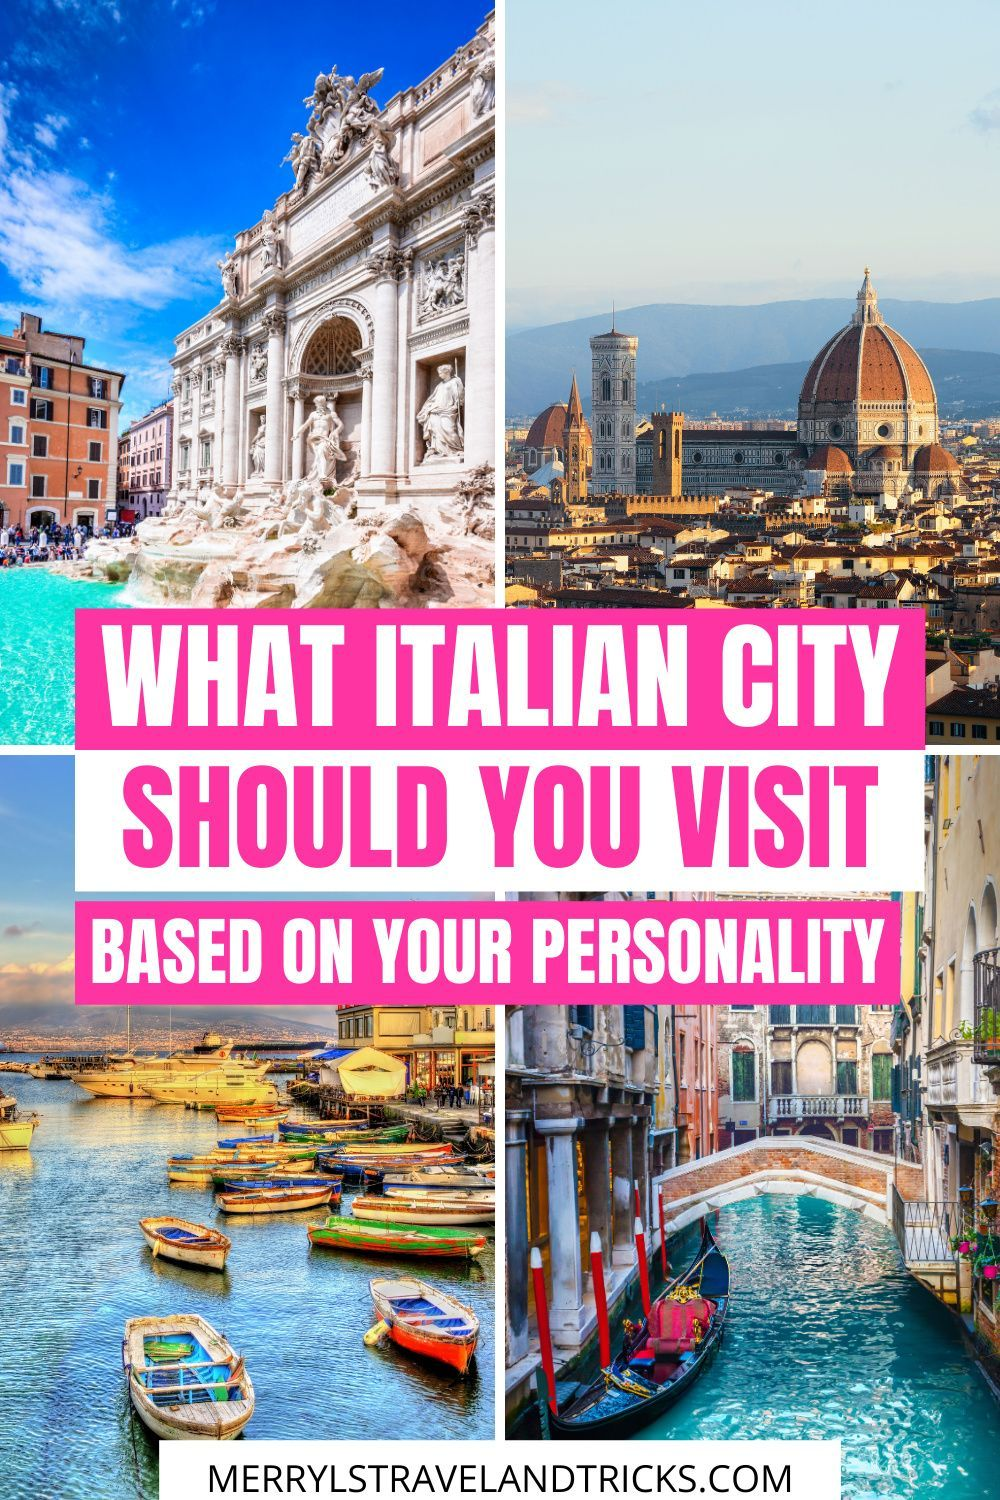 WHAT ITALIAN CITY SHOULD YOU VISIT BASED ON YOUR P